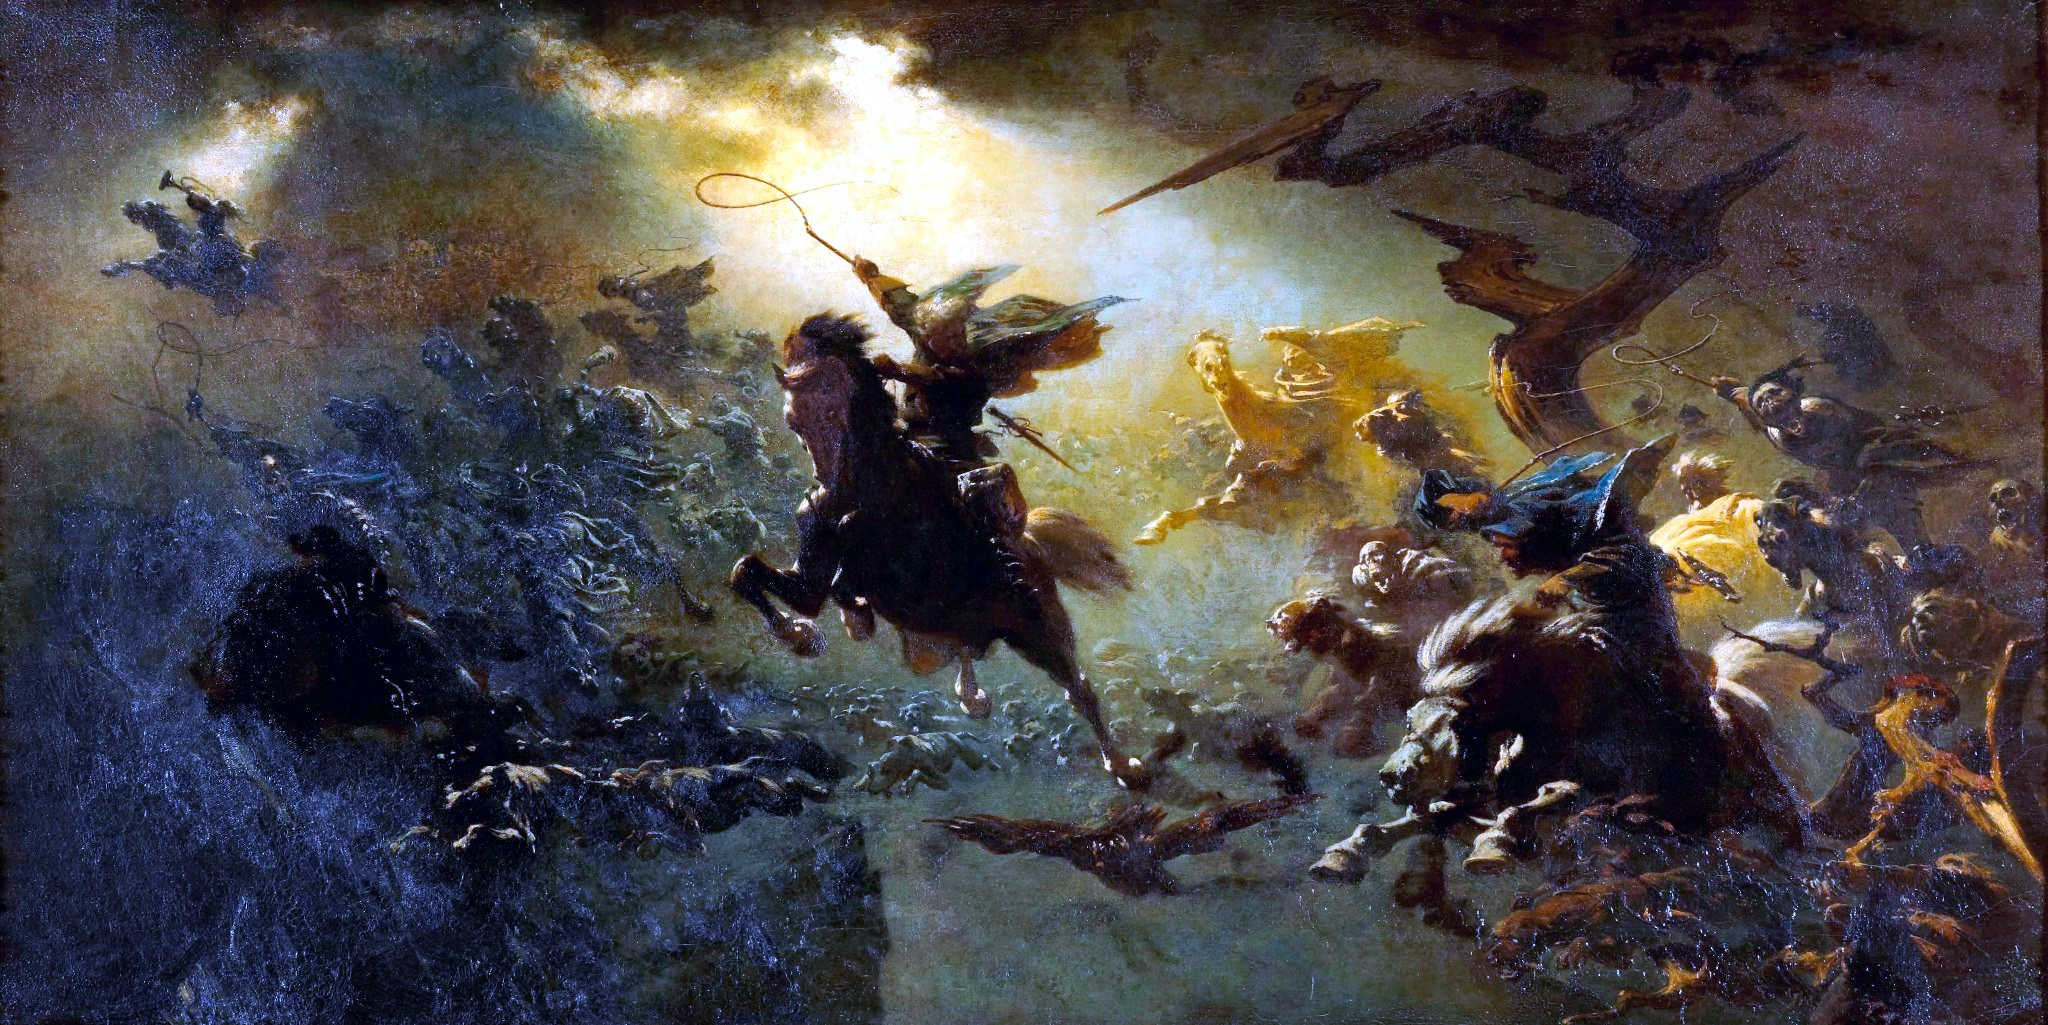 'The Wild Hunt' ~ Johann Wilhelm Cordes